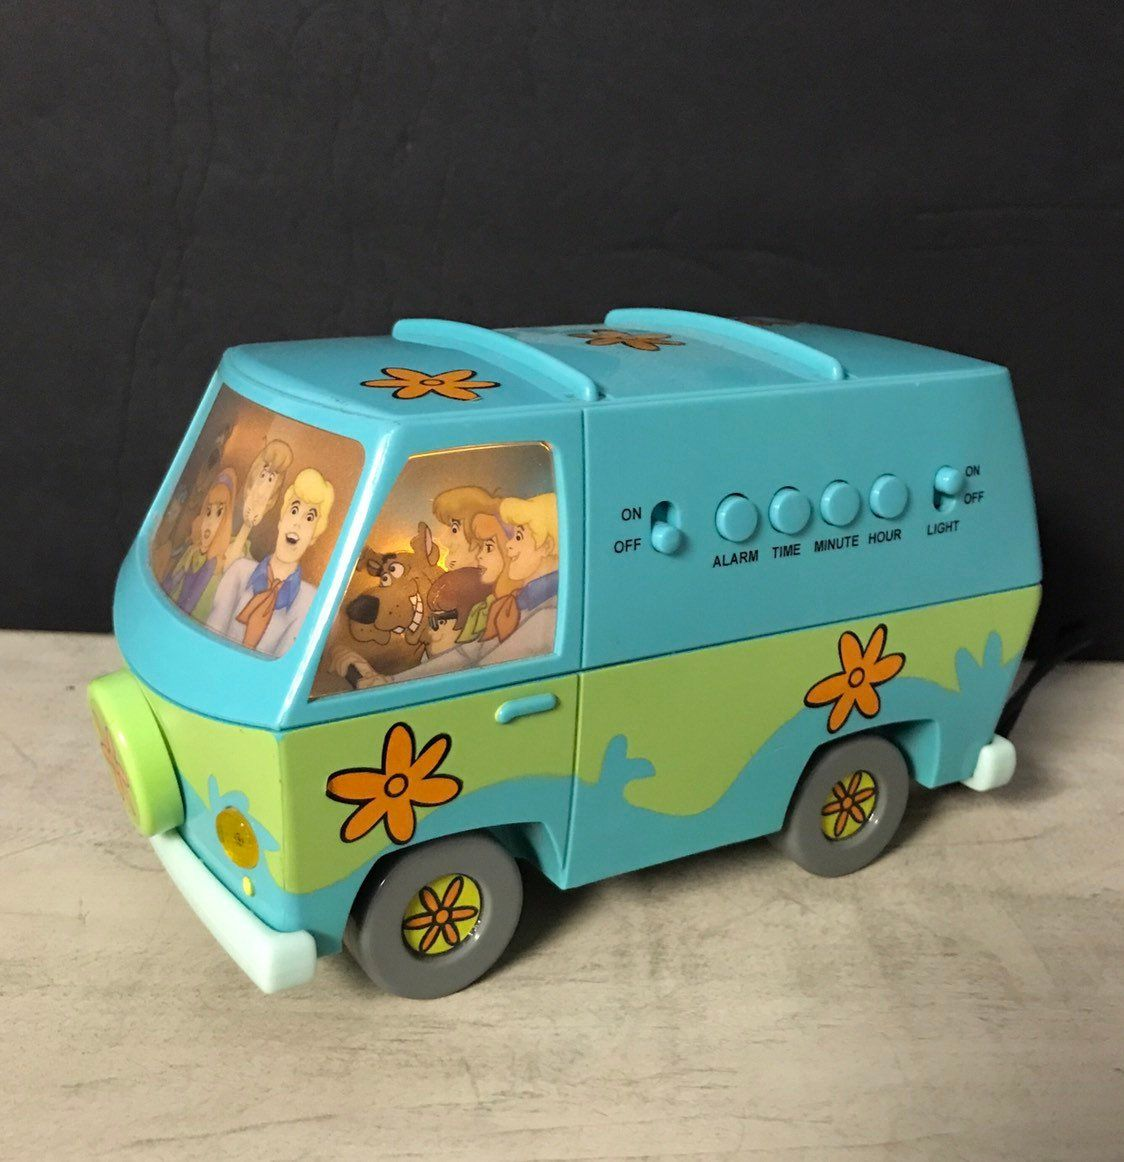 Vintage Scooby Doo Van Alarm Clock And